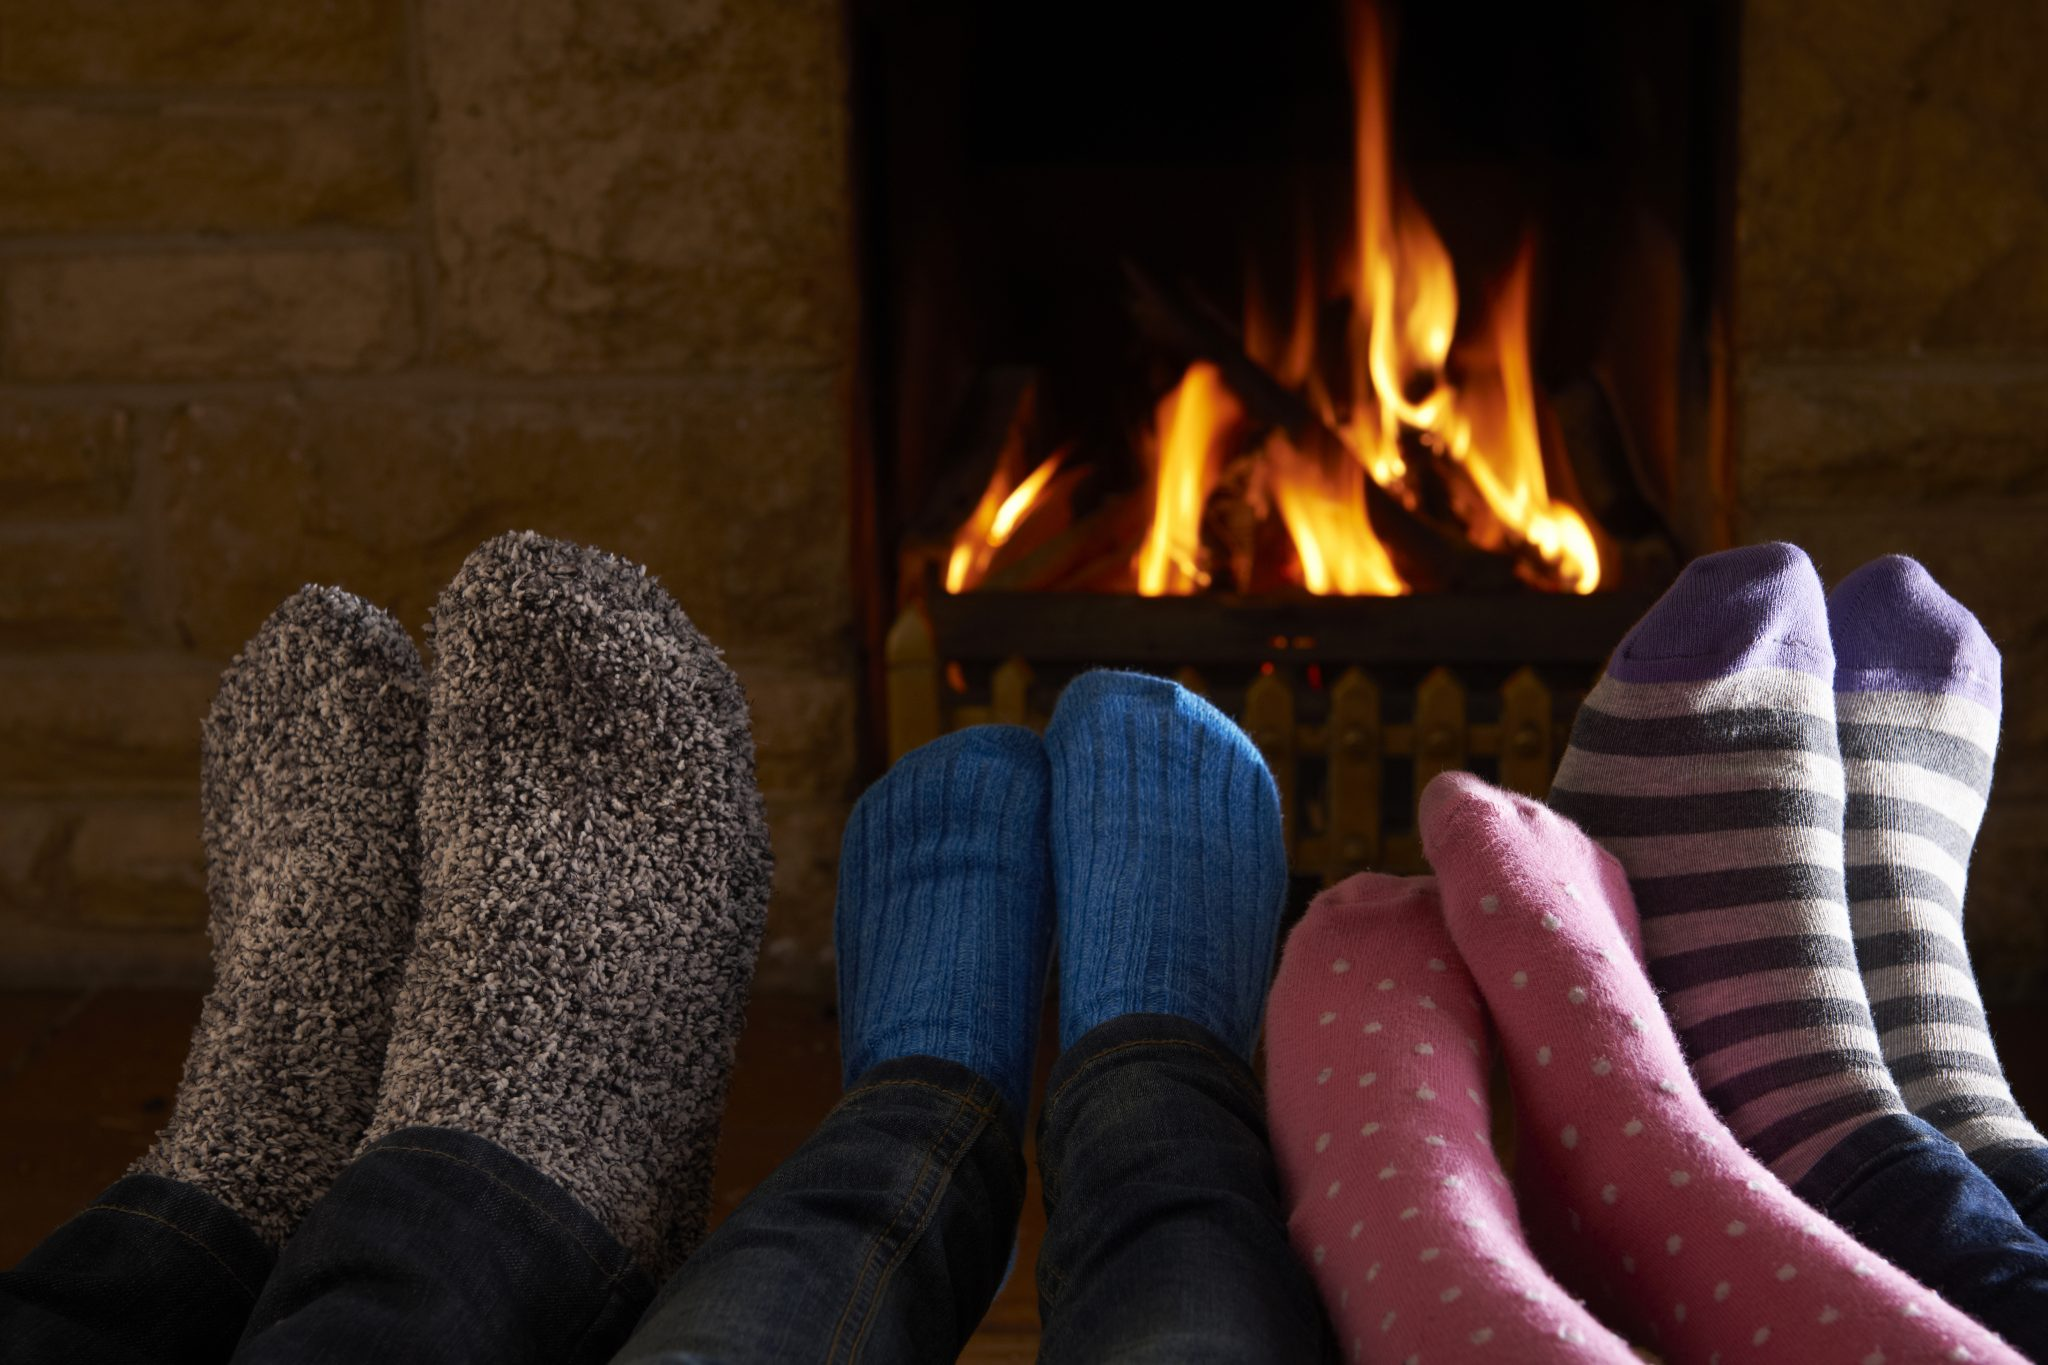 warm fuzzy socks by the fireplace